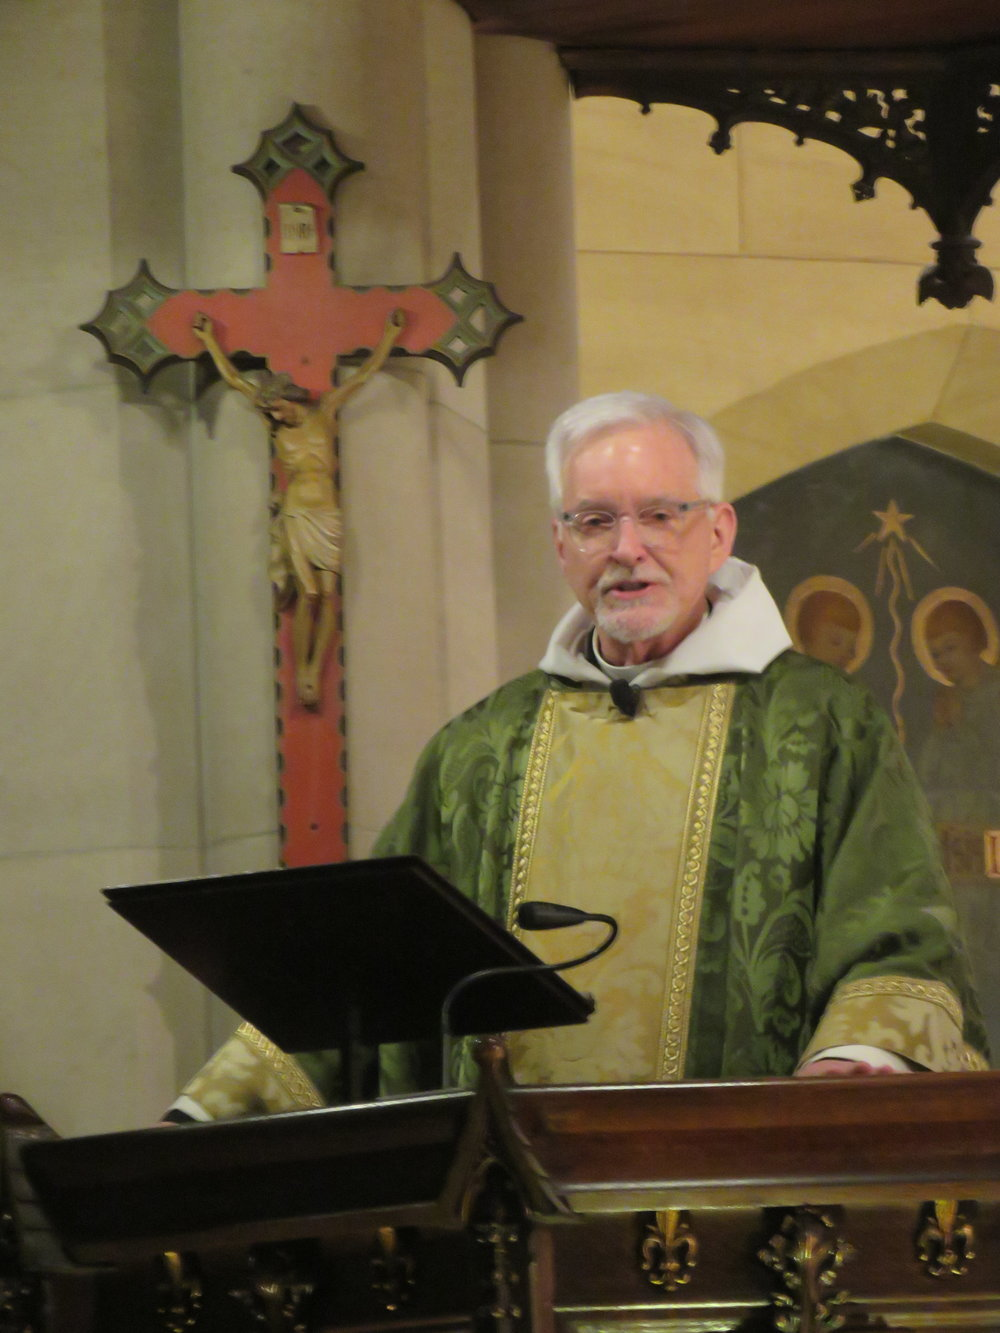 Father Jim Pace was celebrant and preacher for the Solemn Mass on January 20, 2019.  Photo by Br. Damien Joseph SSF